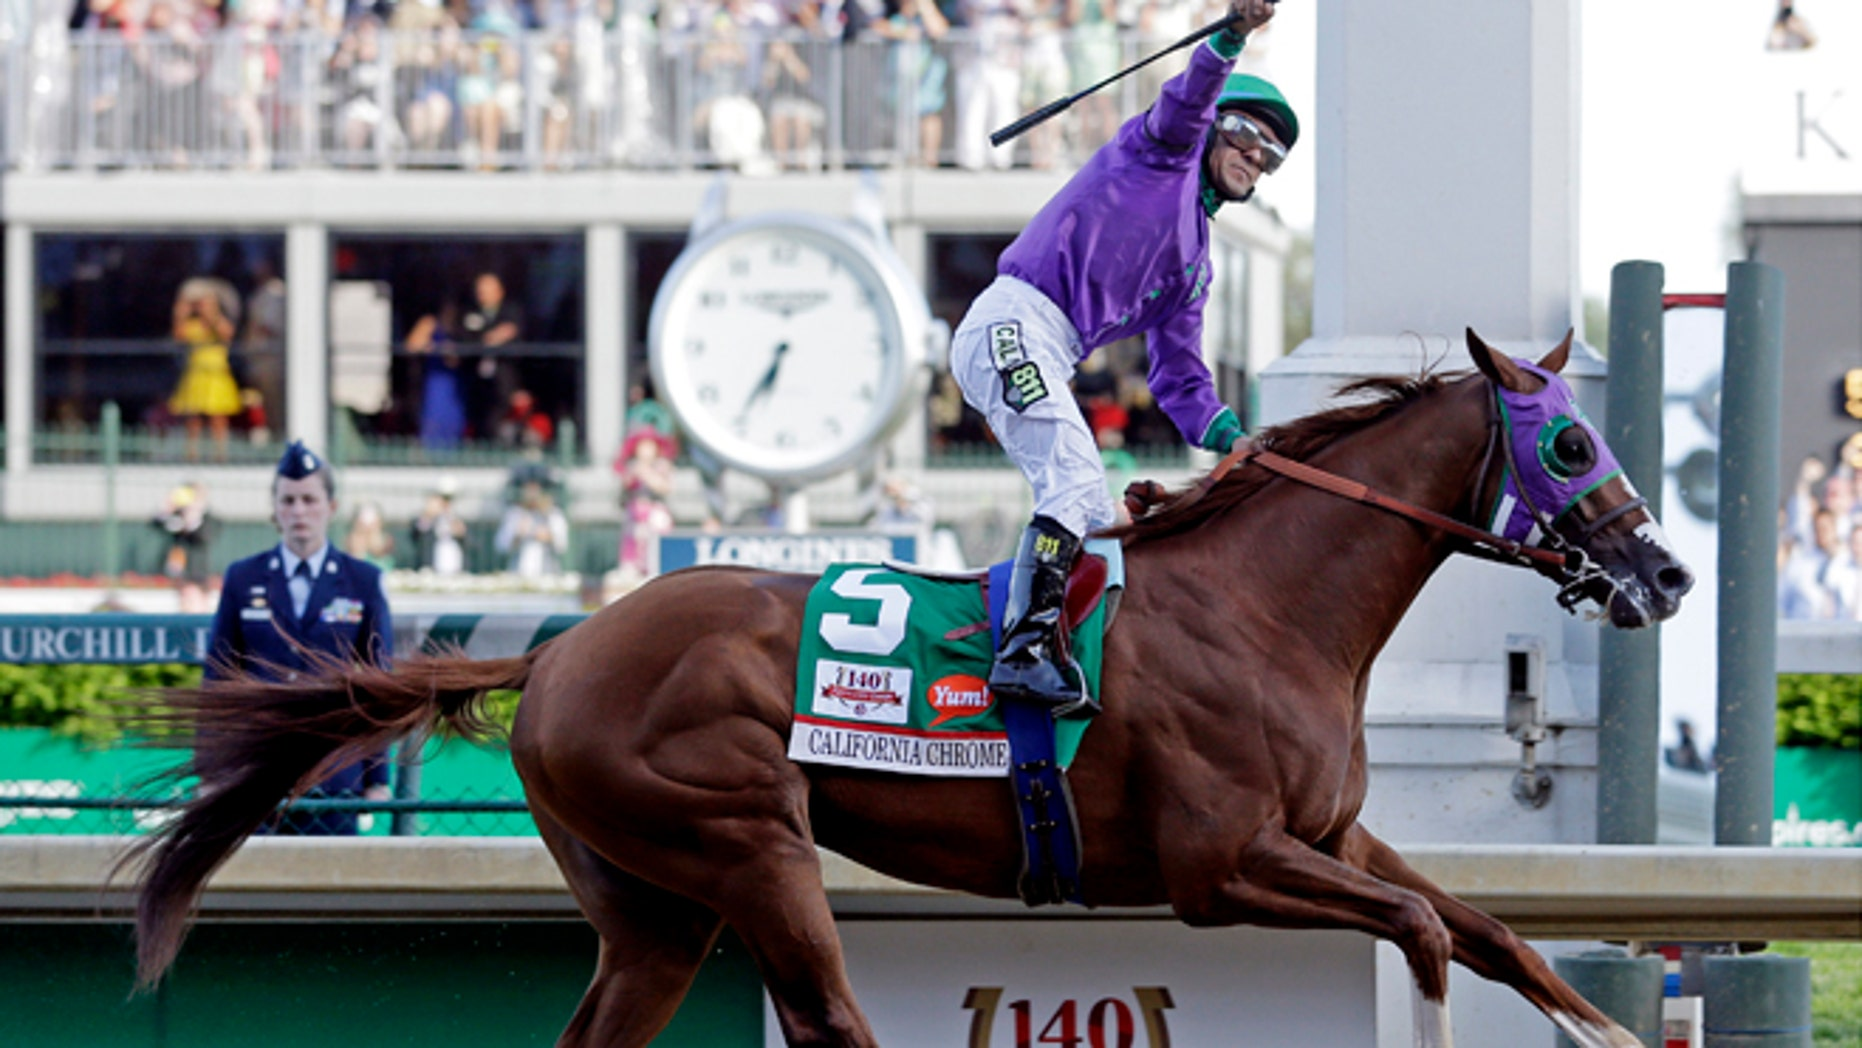 May 3, 2014: Victor Espinoza rides California Chrome to a victory during the 140th running of the Kentucky Derby horse race at Churchill Downs in Louisville, Ky. (AP)